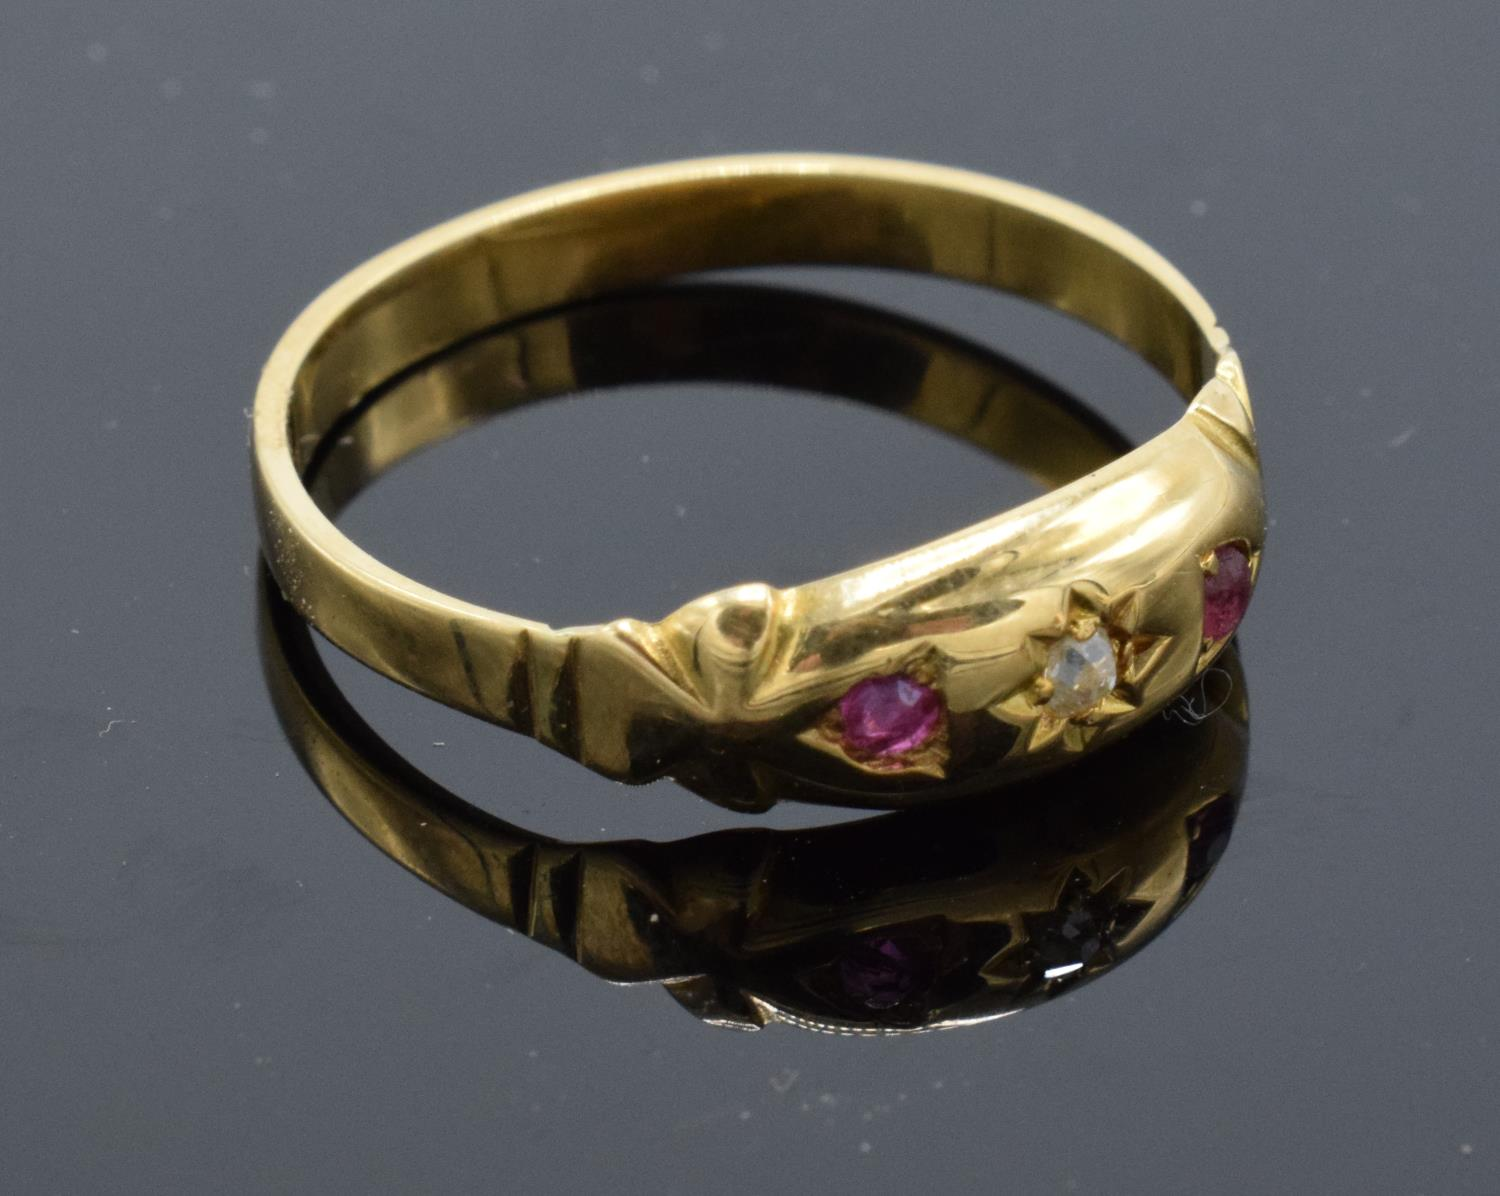 18ct gold ladies ring set with rubies and a diamond stone. UK size P/Q. Gross weight 2.2 grams.